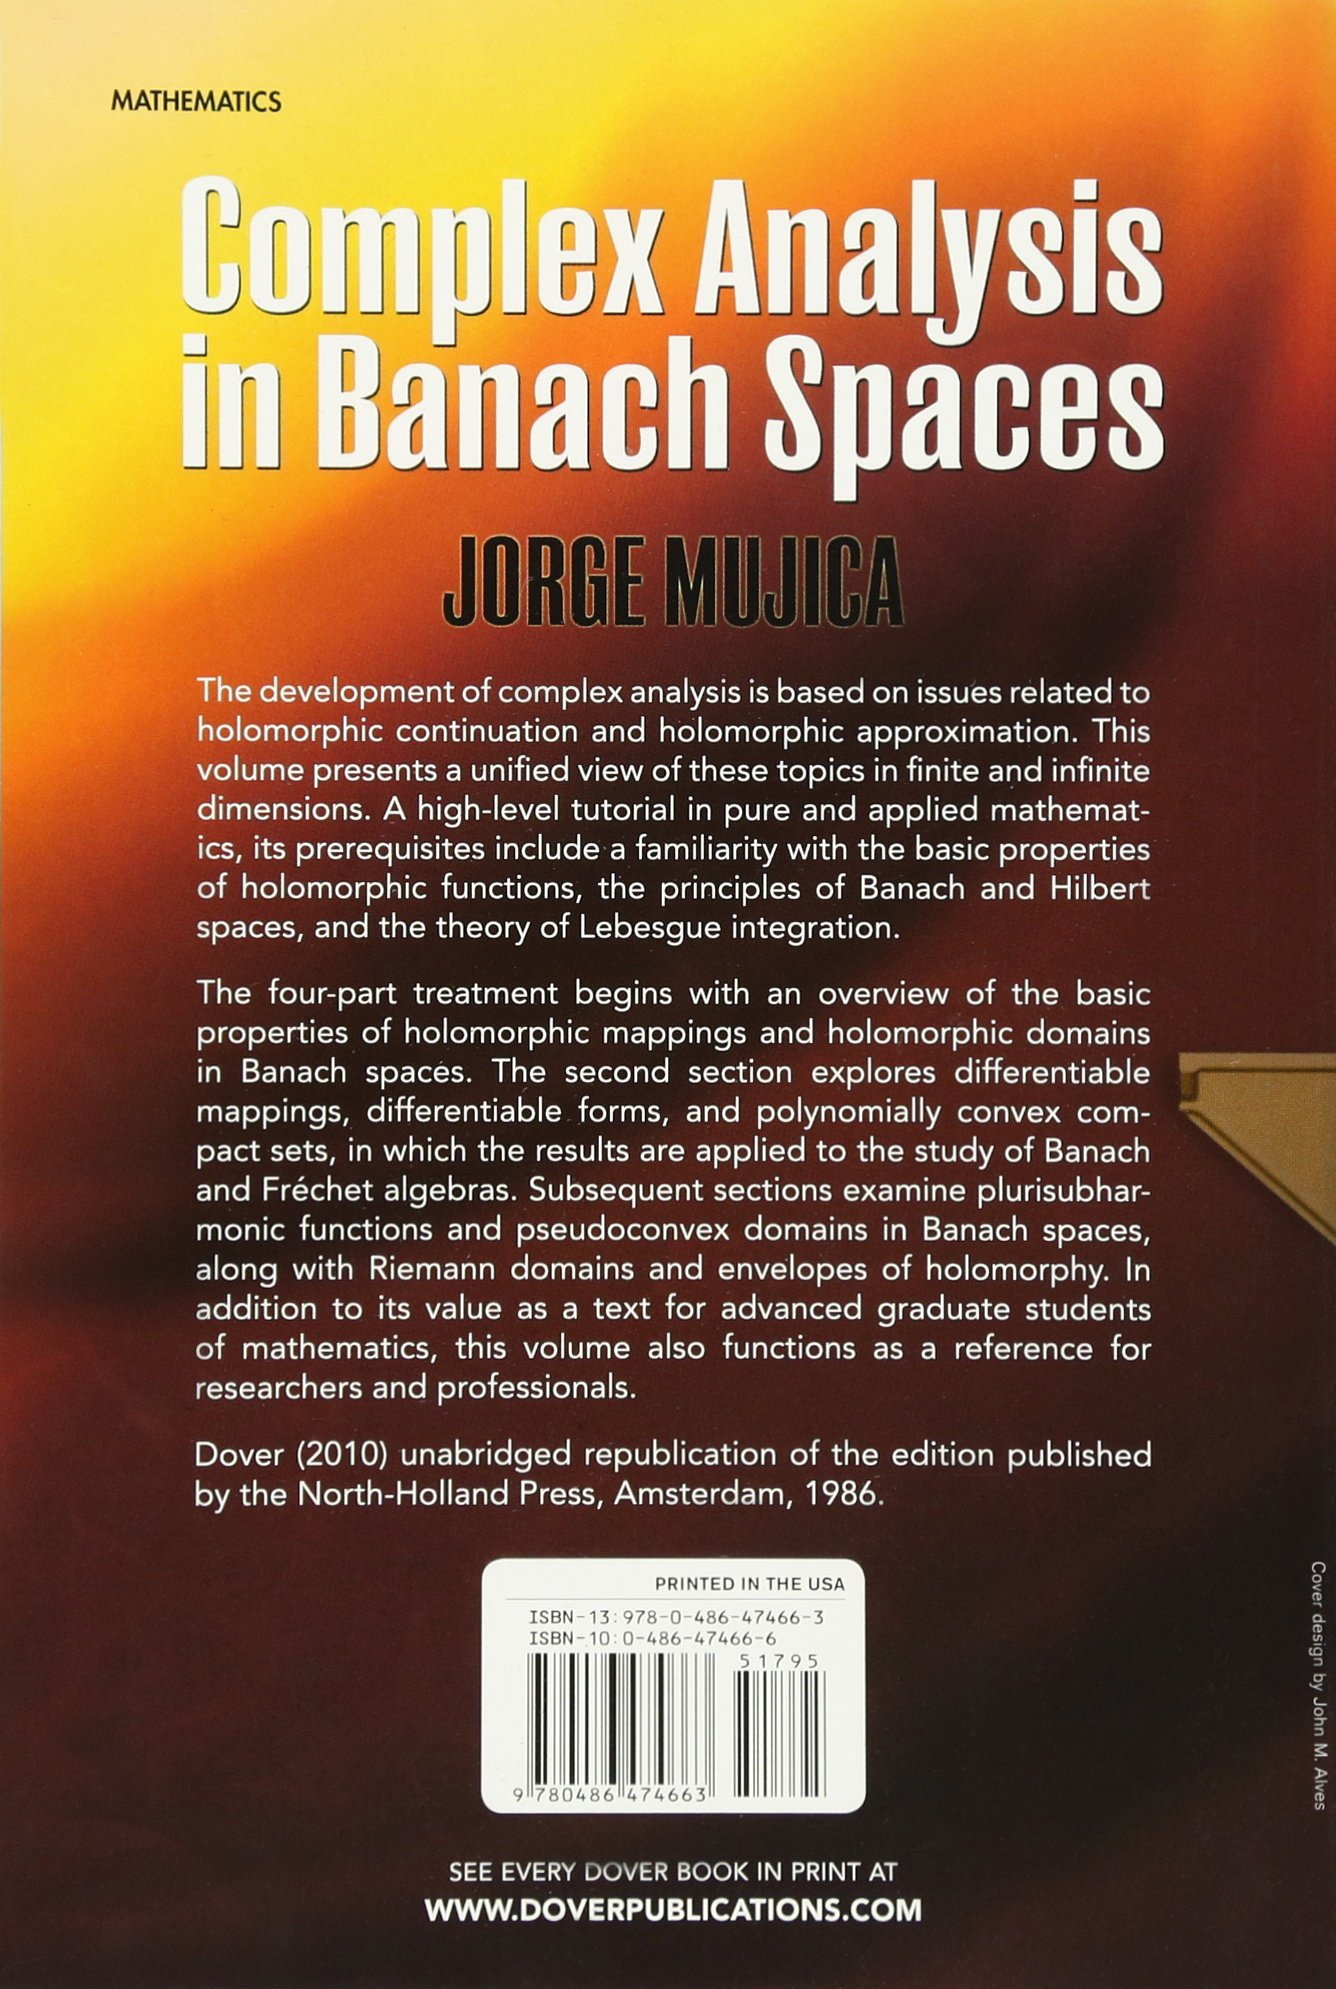 Complex analysis in banach spaces dover books on mathematics complex analysis in banach spaces dover books on mathematics jorge mujica 9780486474663 amazon books fandeluxe Gallery